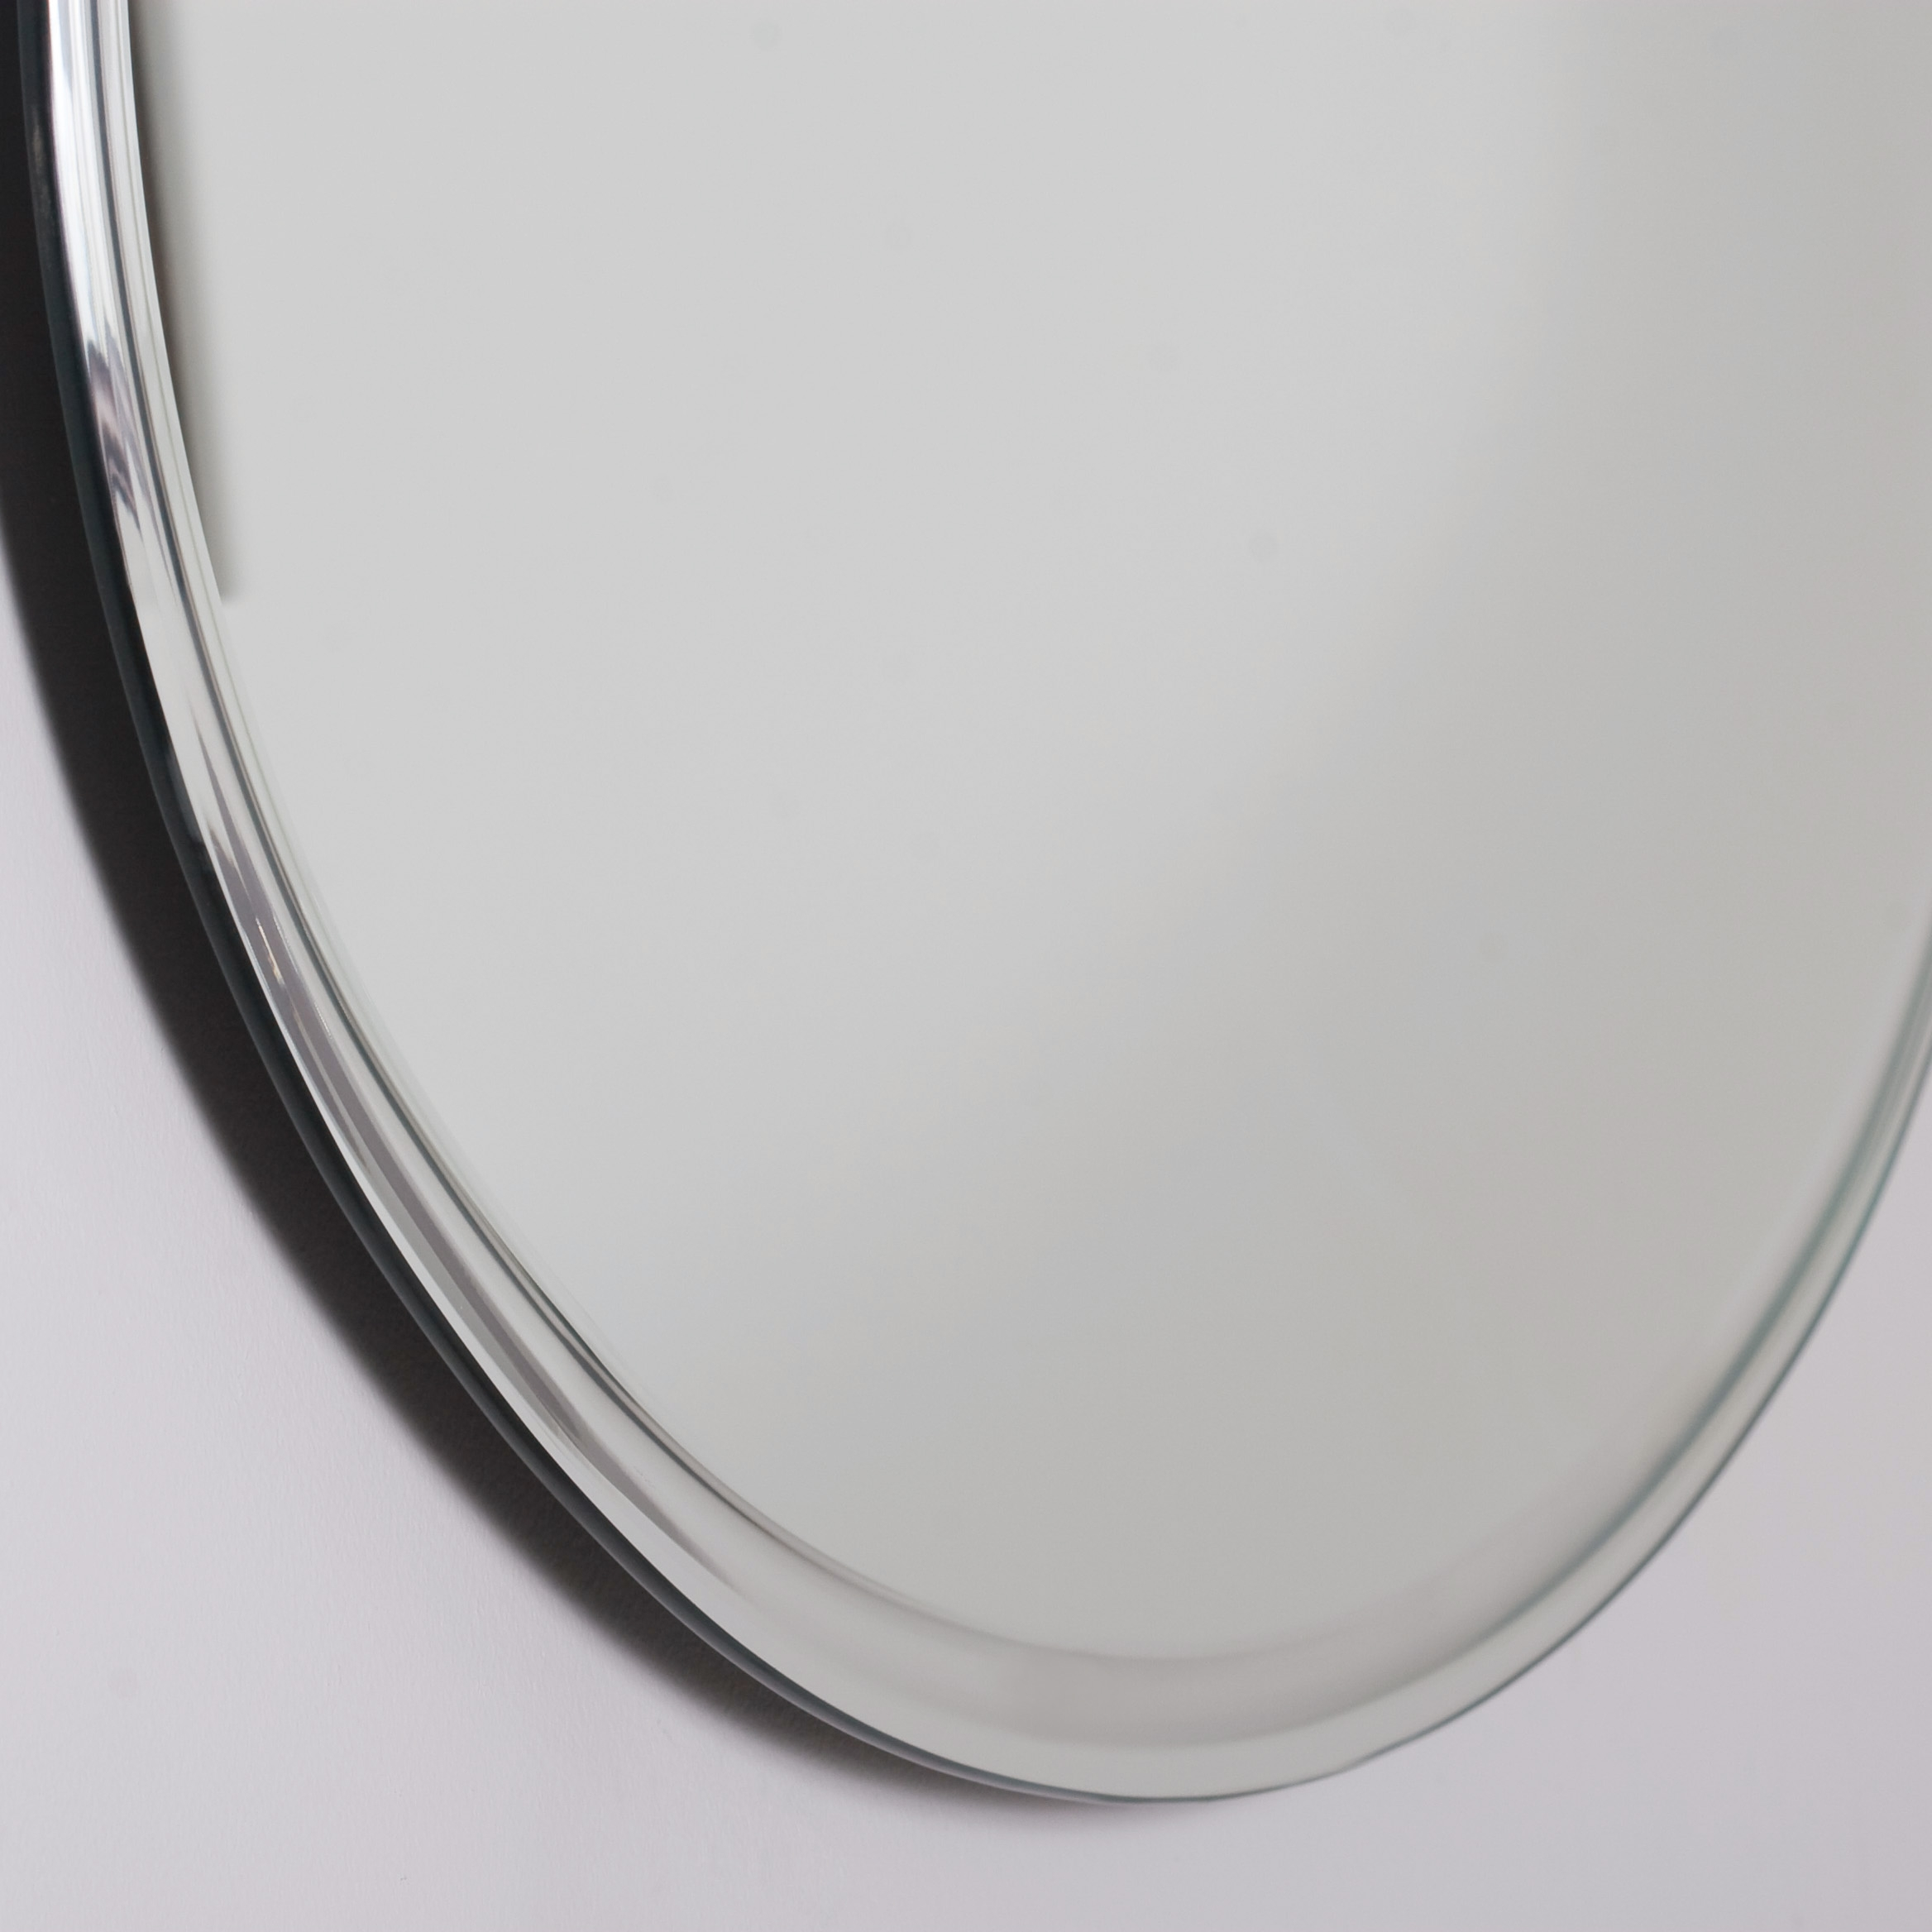 Decor Wonderland Extra Long Oval Wall Mirror Beyond Stores With Long Oval Mirror (Image 9 of 15)